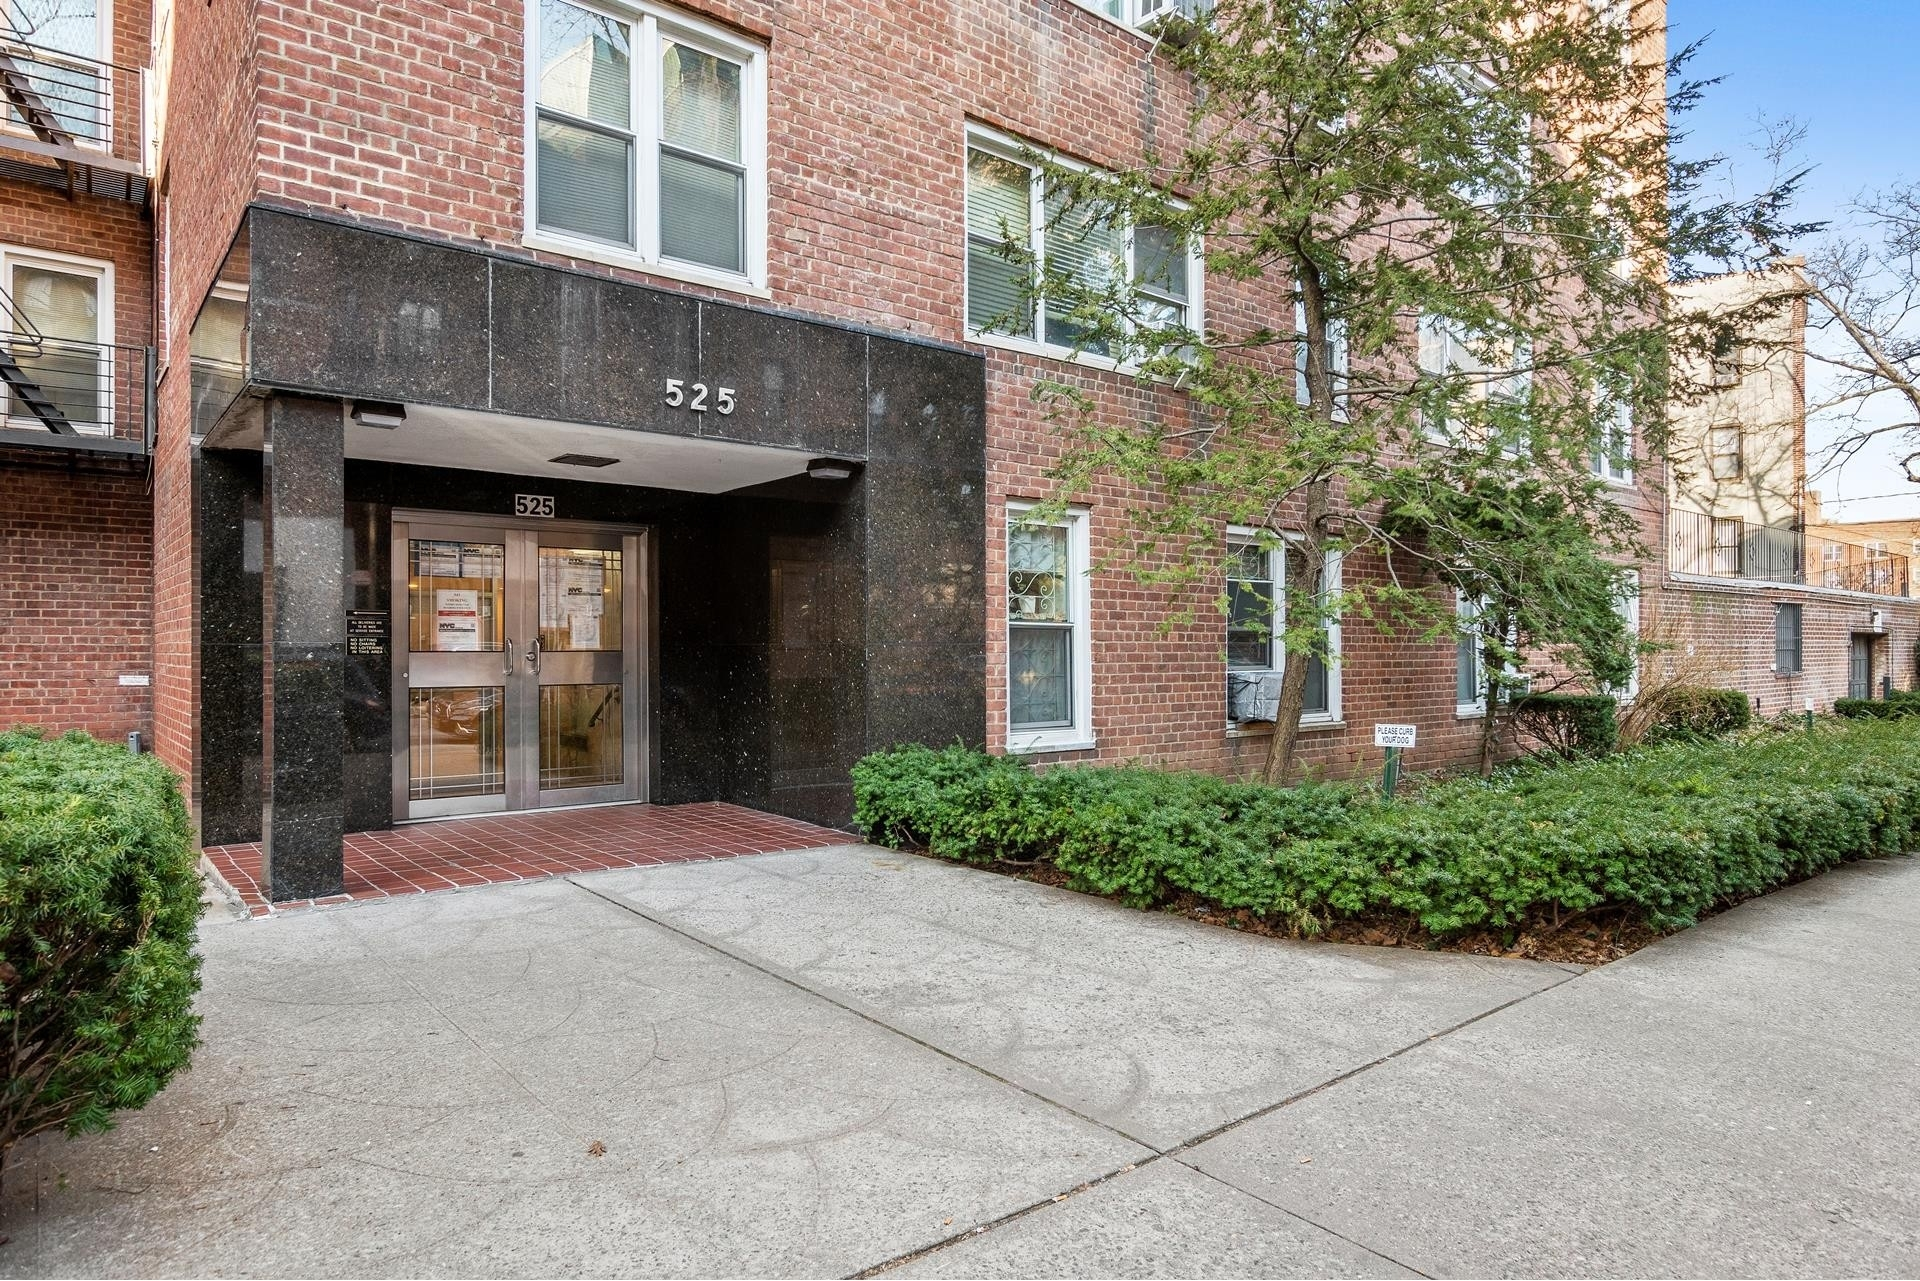 1. 建於525 West 236th St, Central Riverdale, Bronx, NY